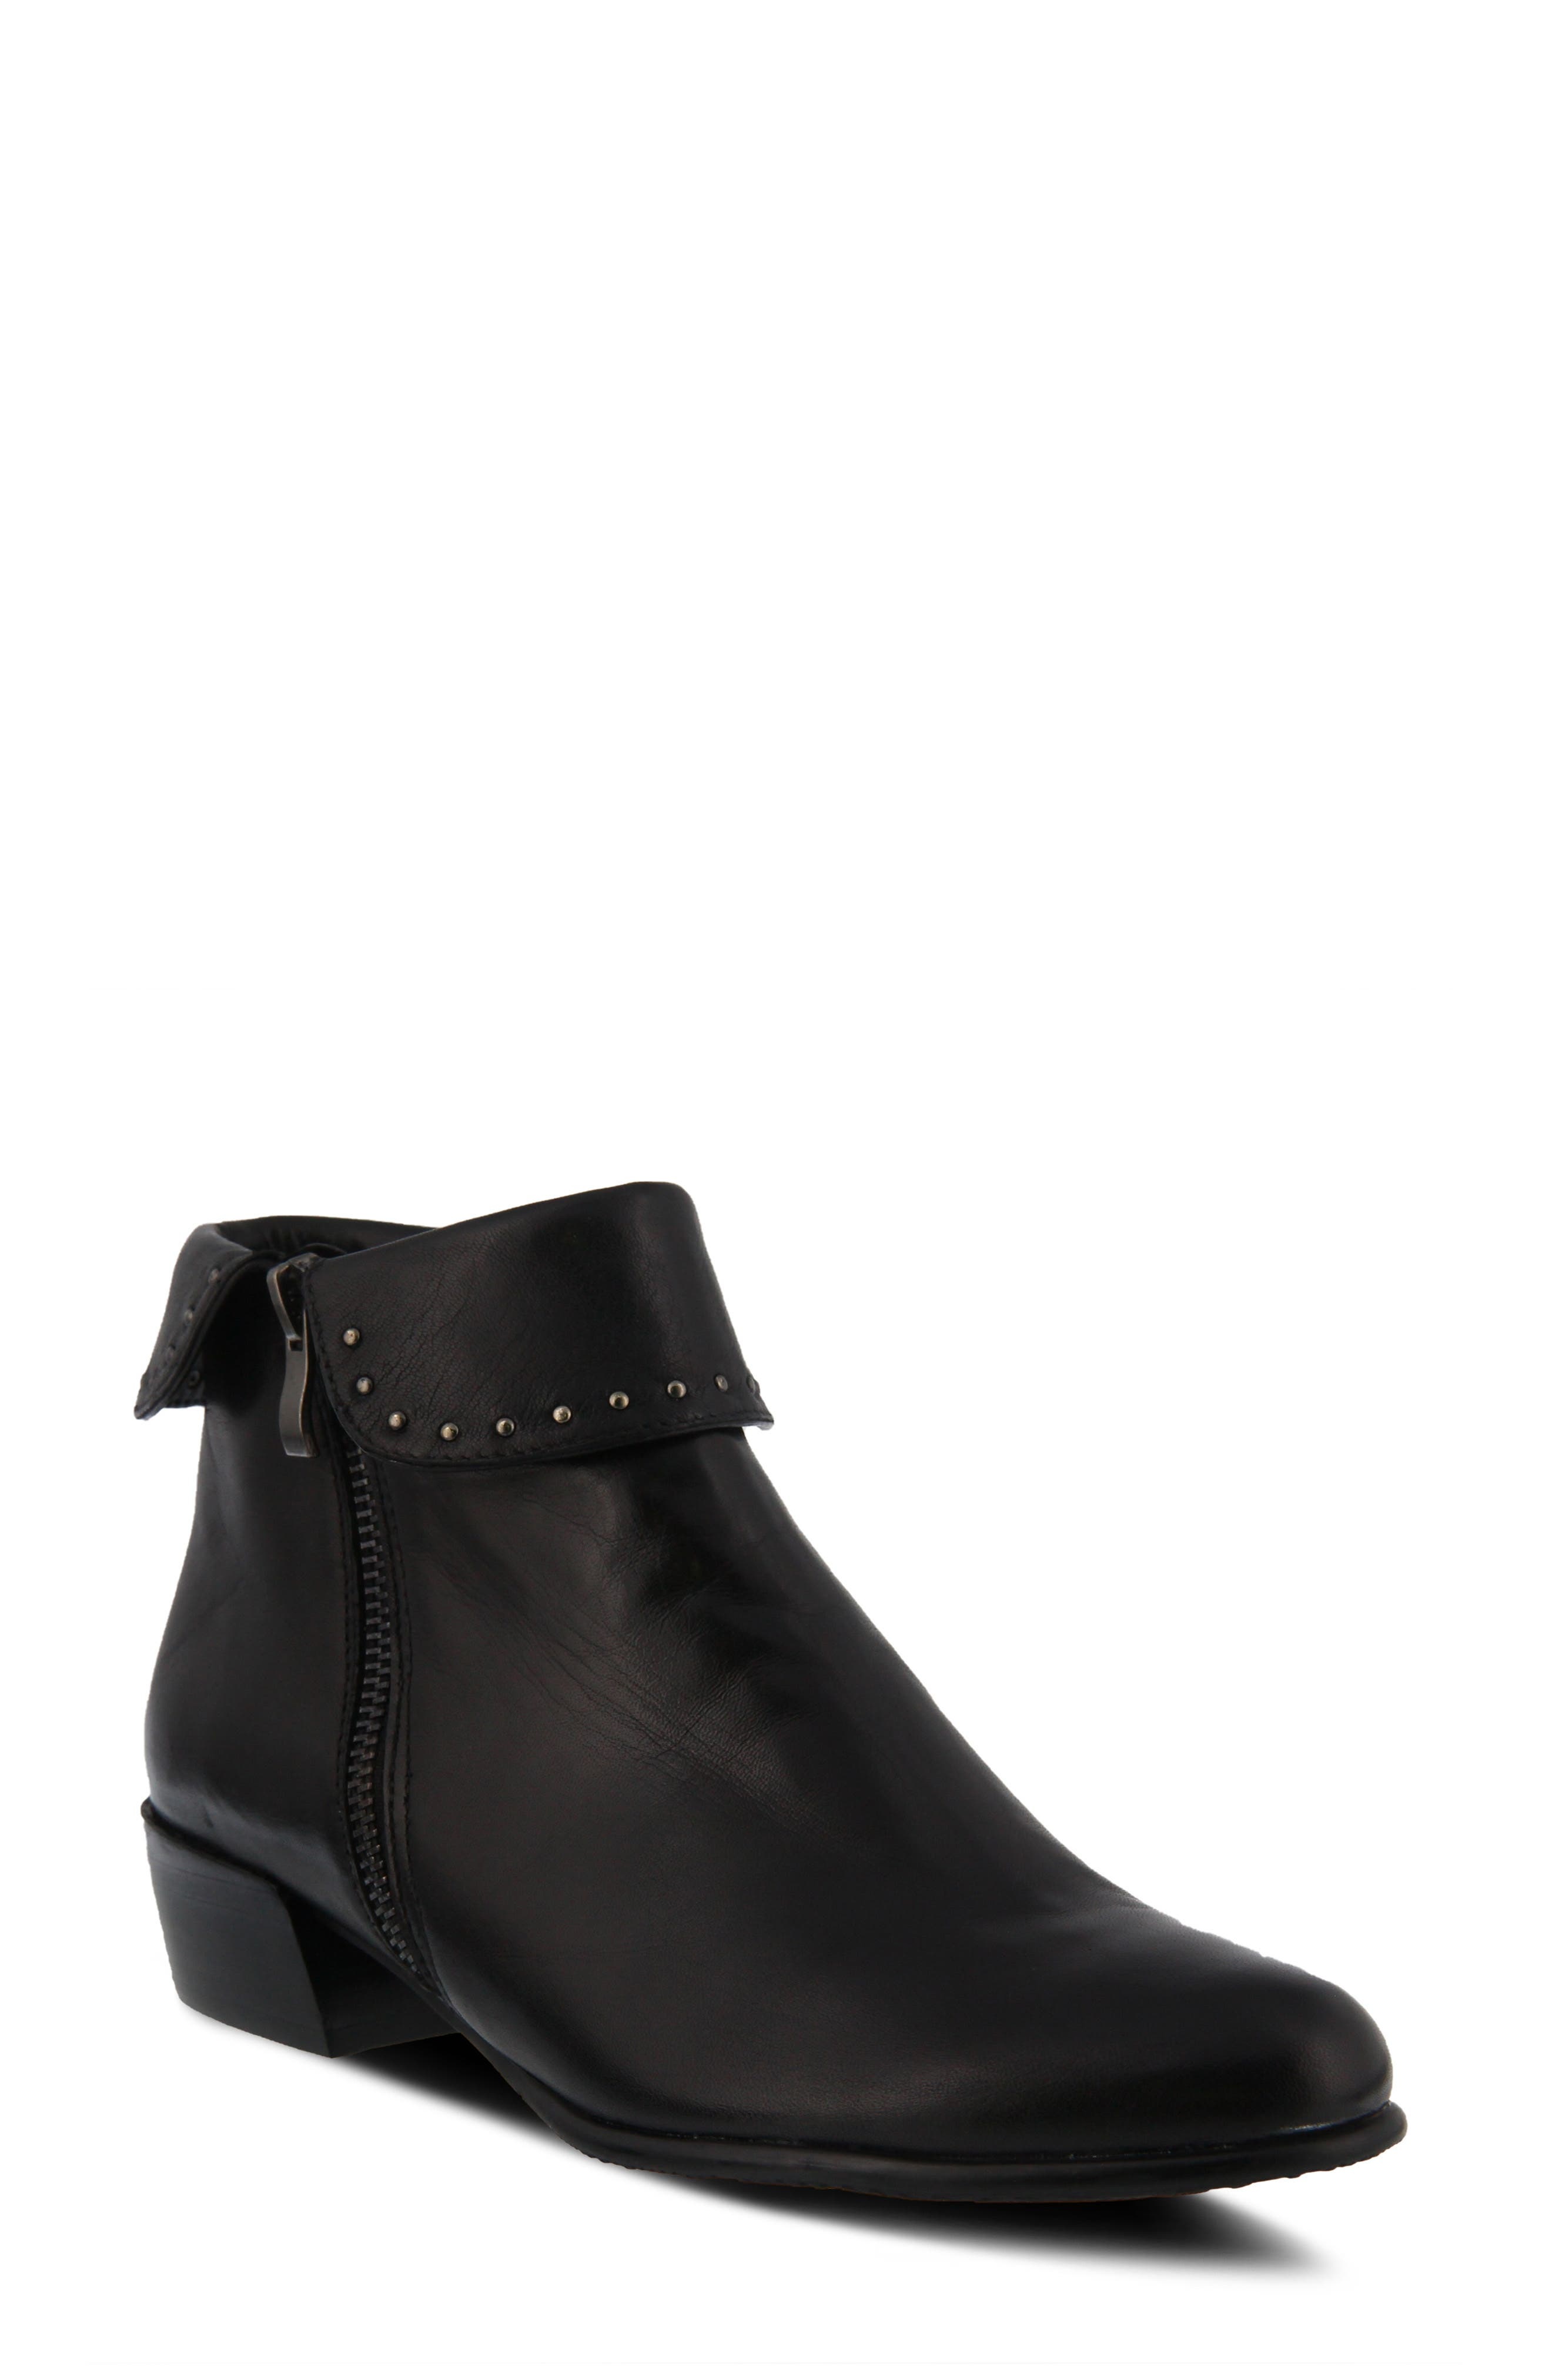 Spring Step Deandrala Bootie - Black